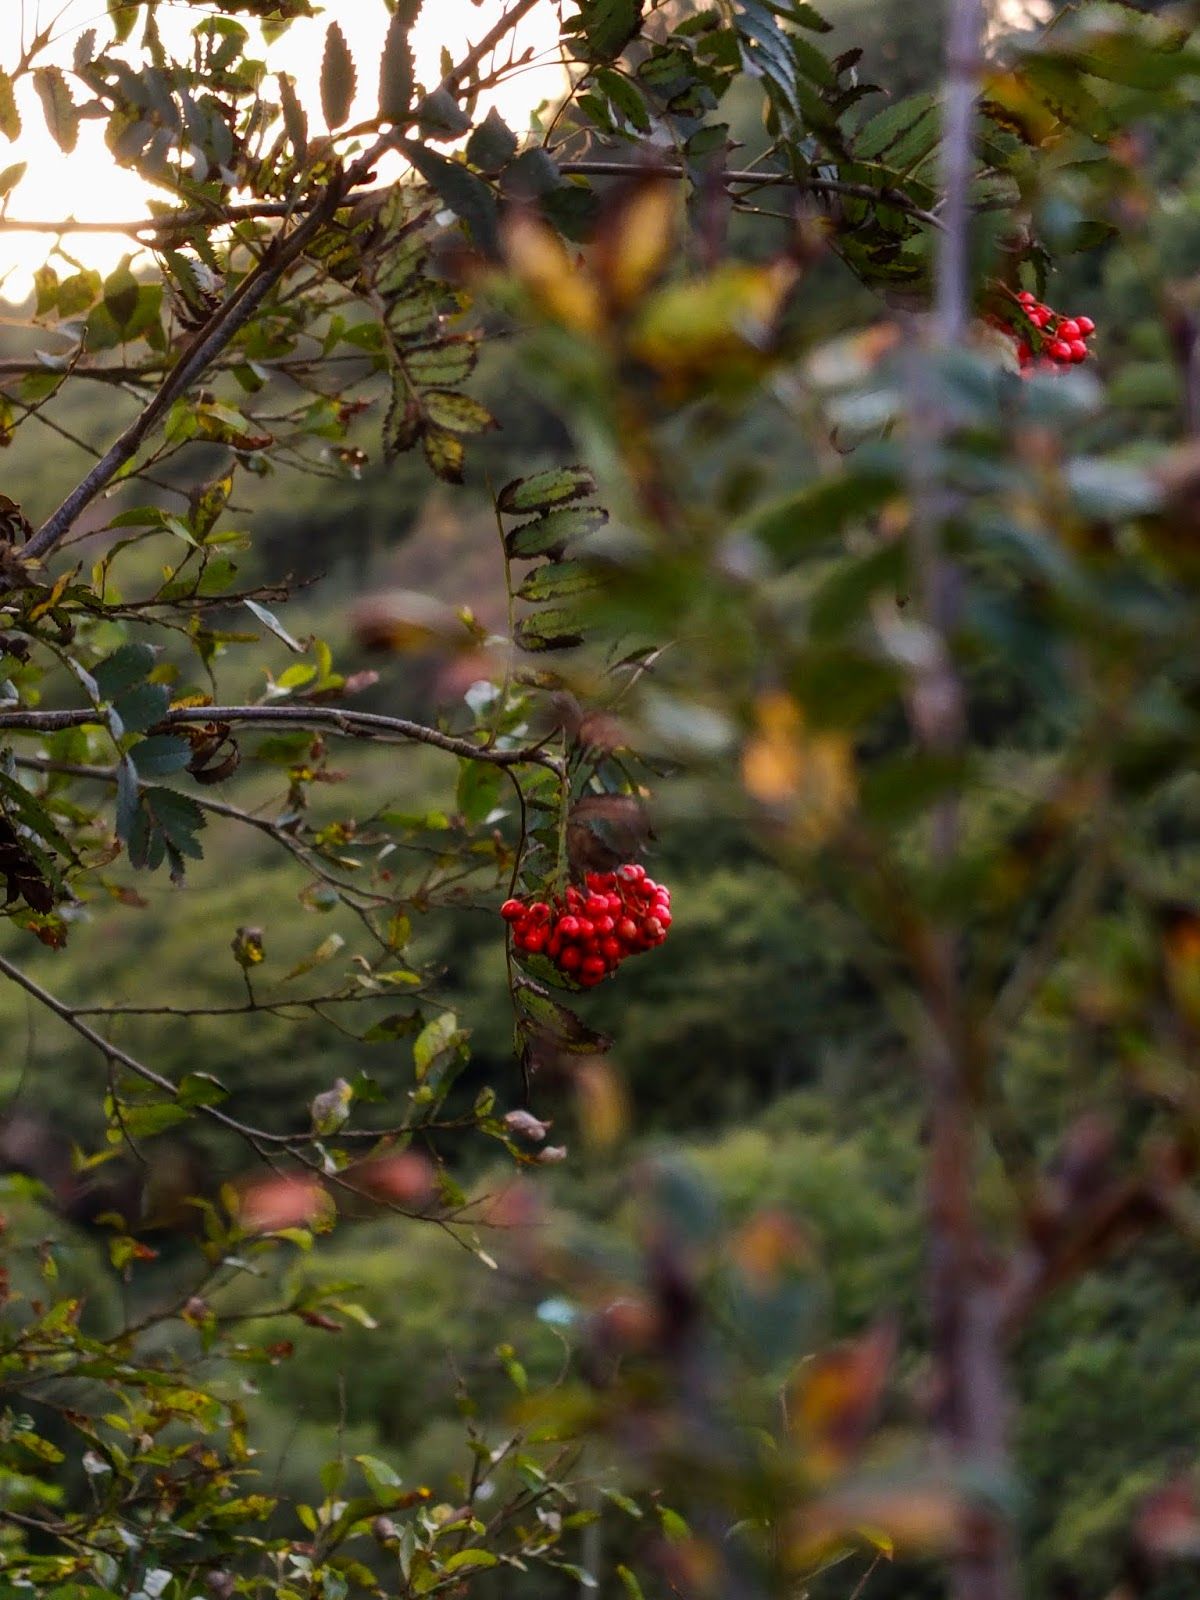 Mountain Ash berries hanging of the tree during a sunset.